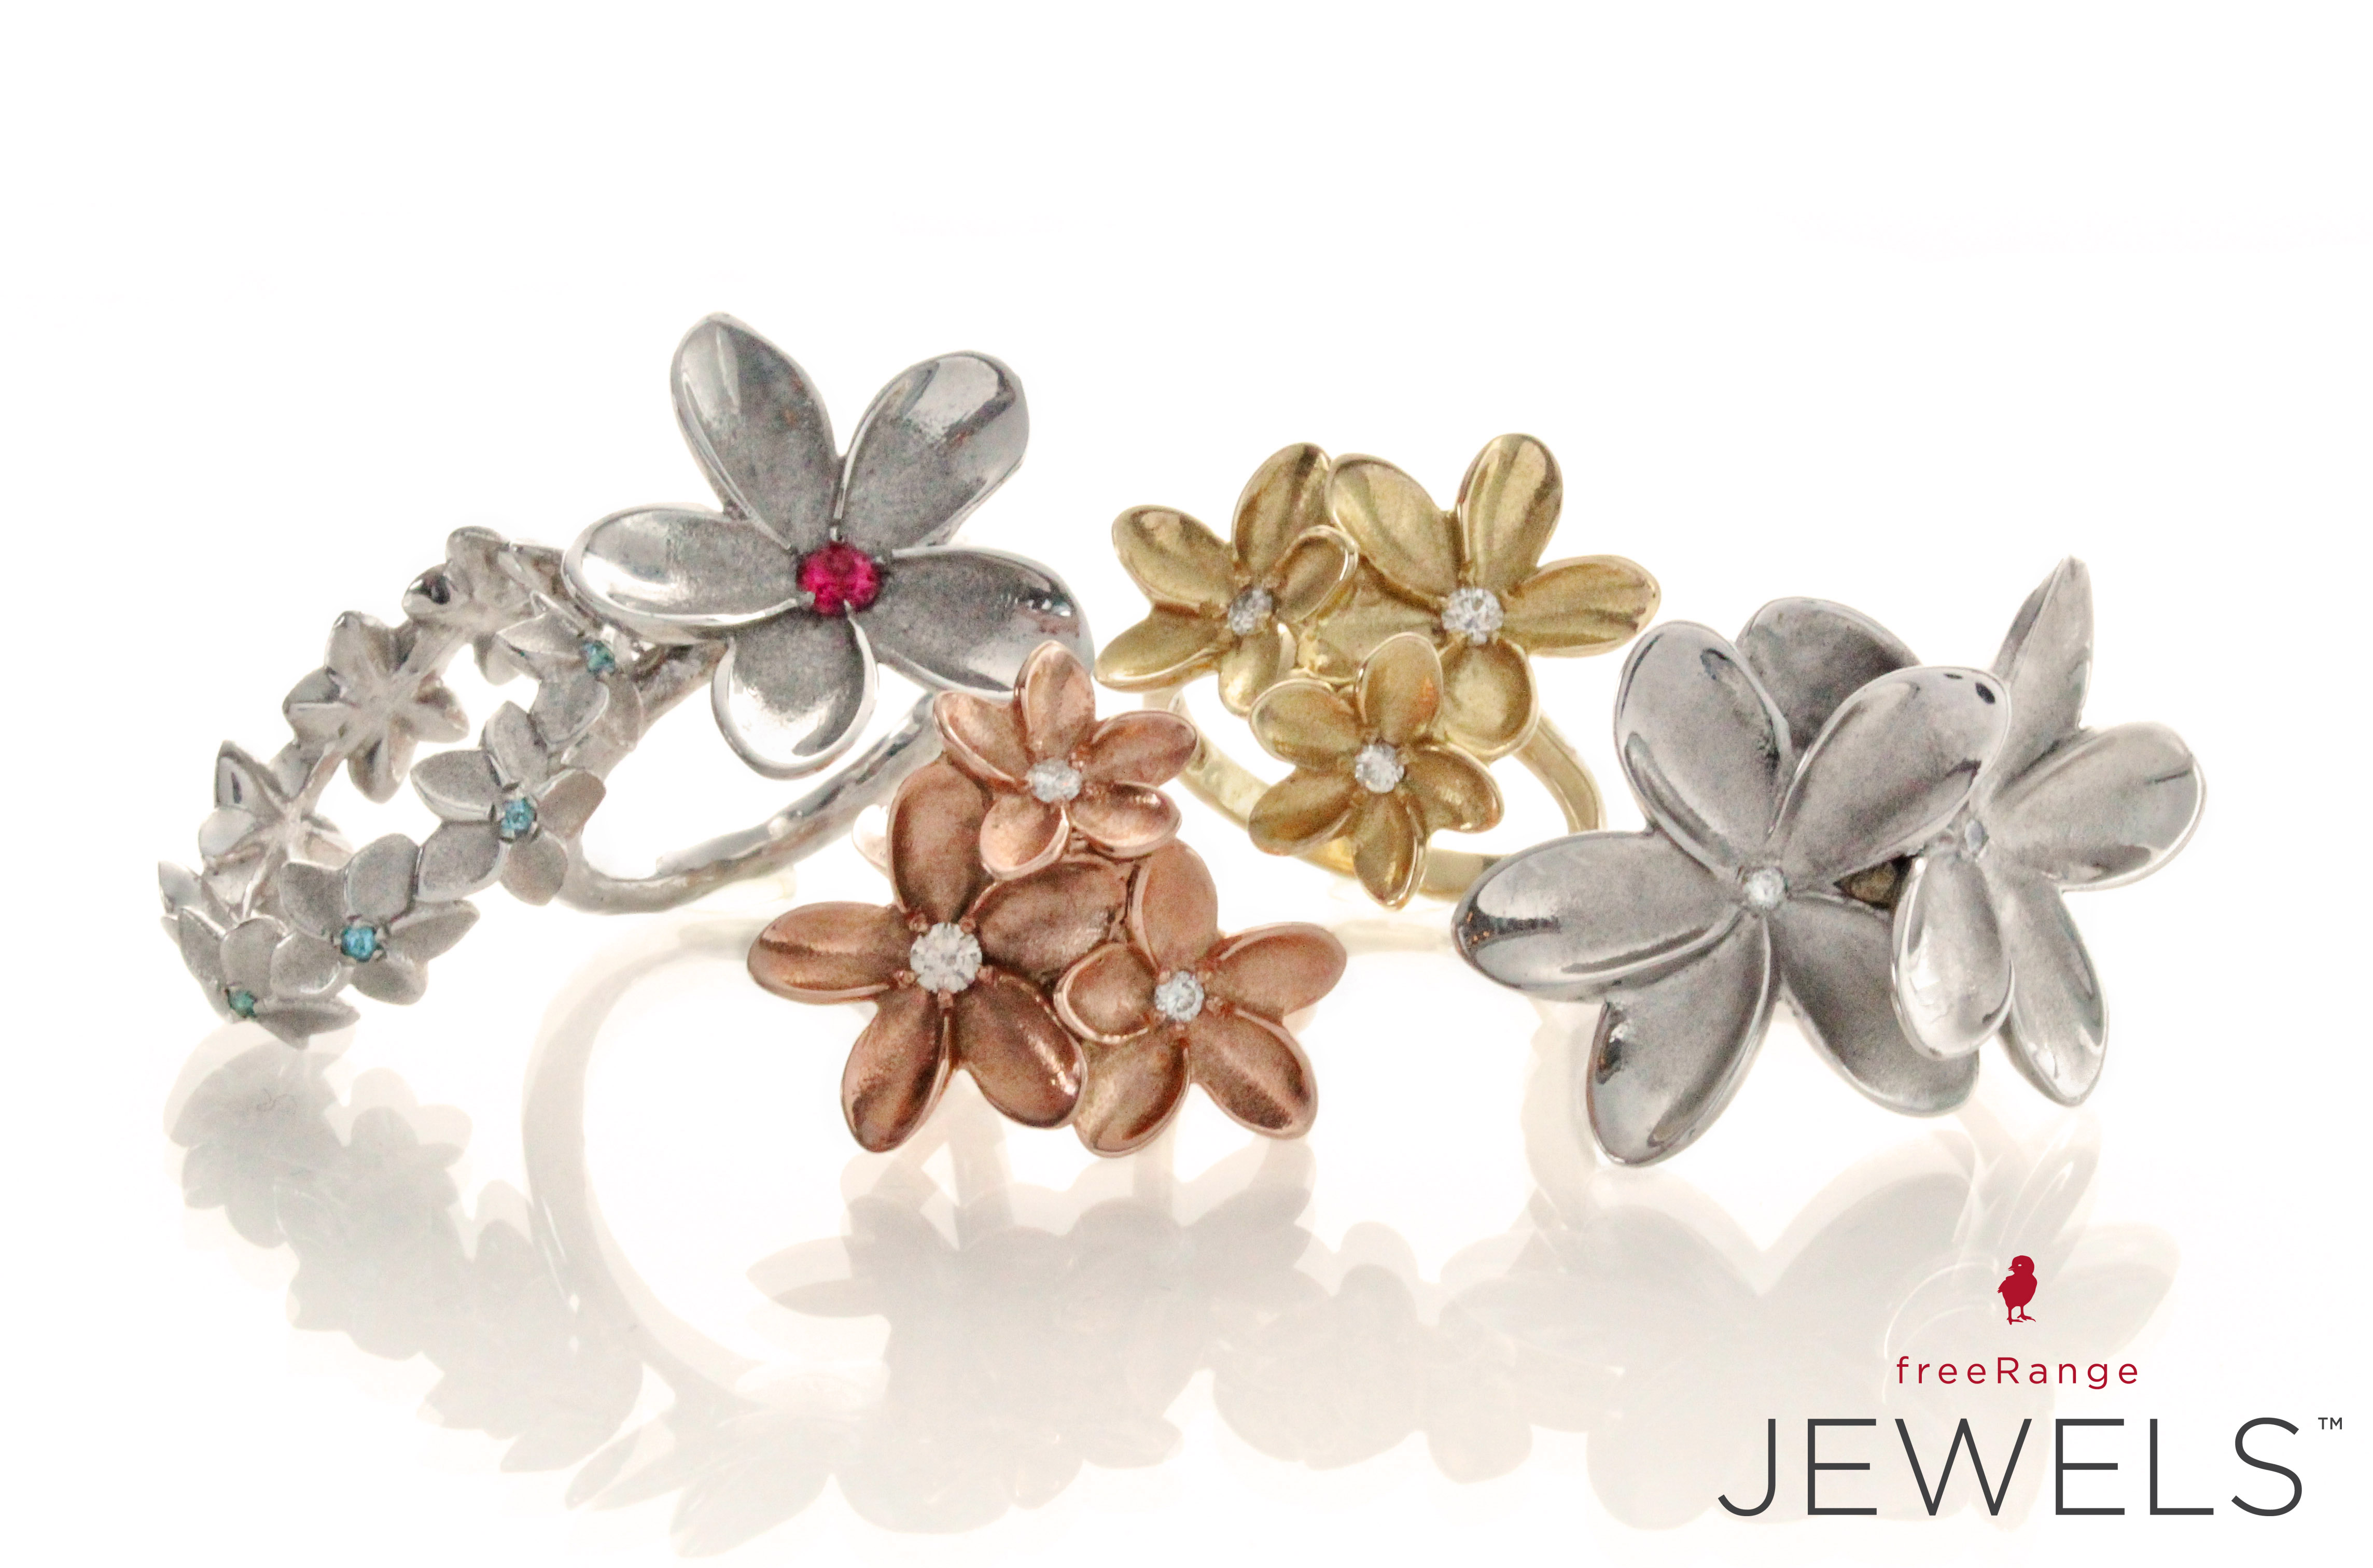 Free Range Jewels from Offtherails